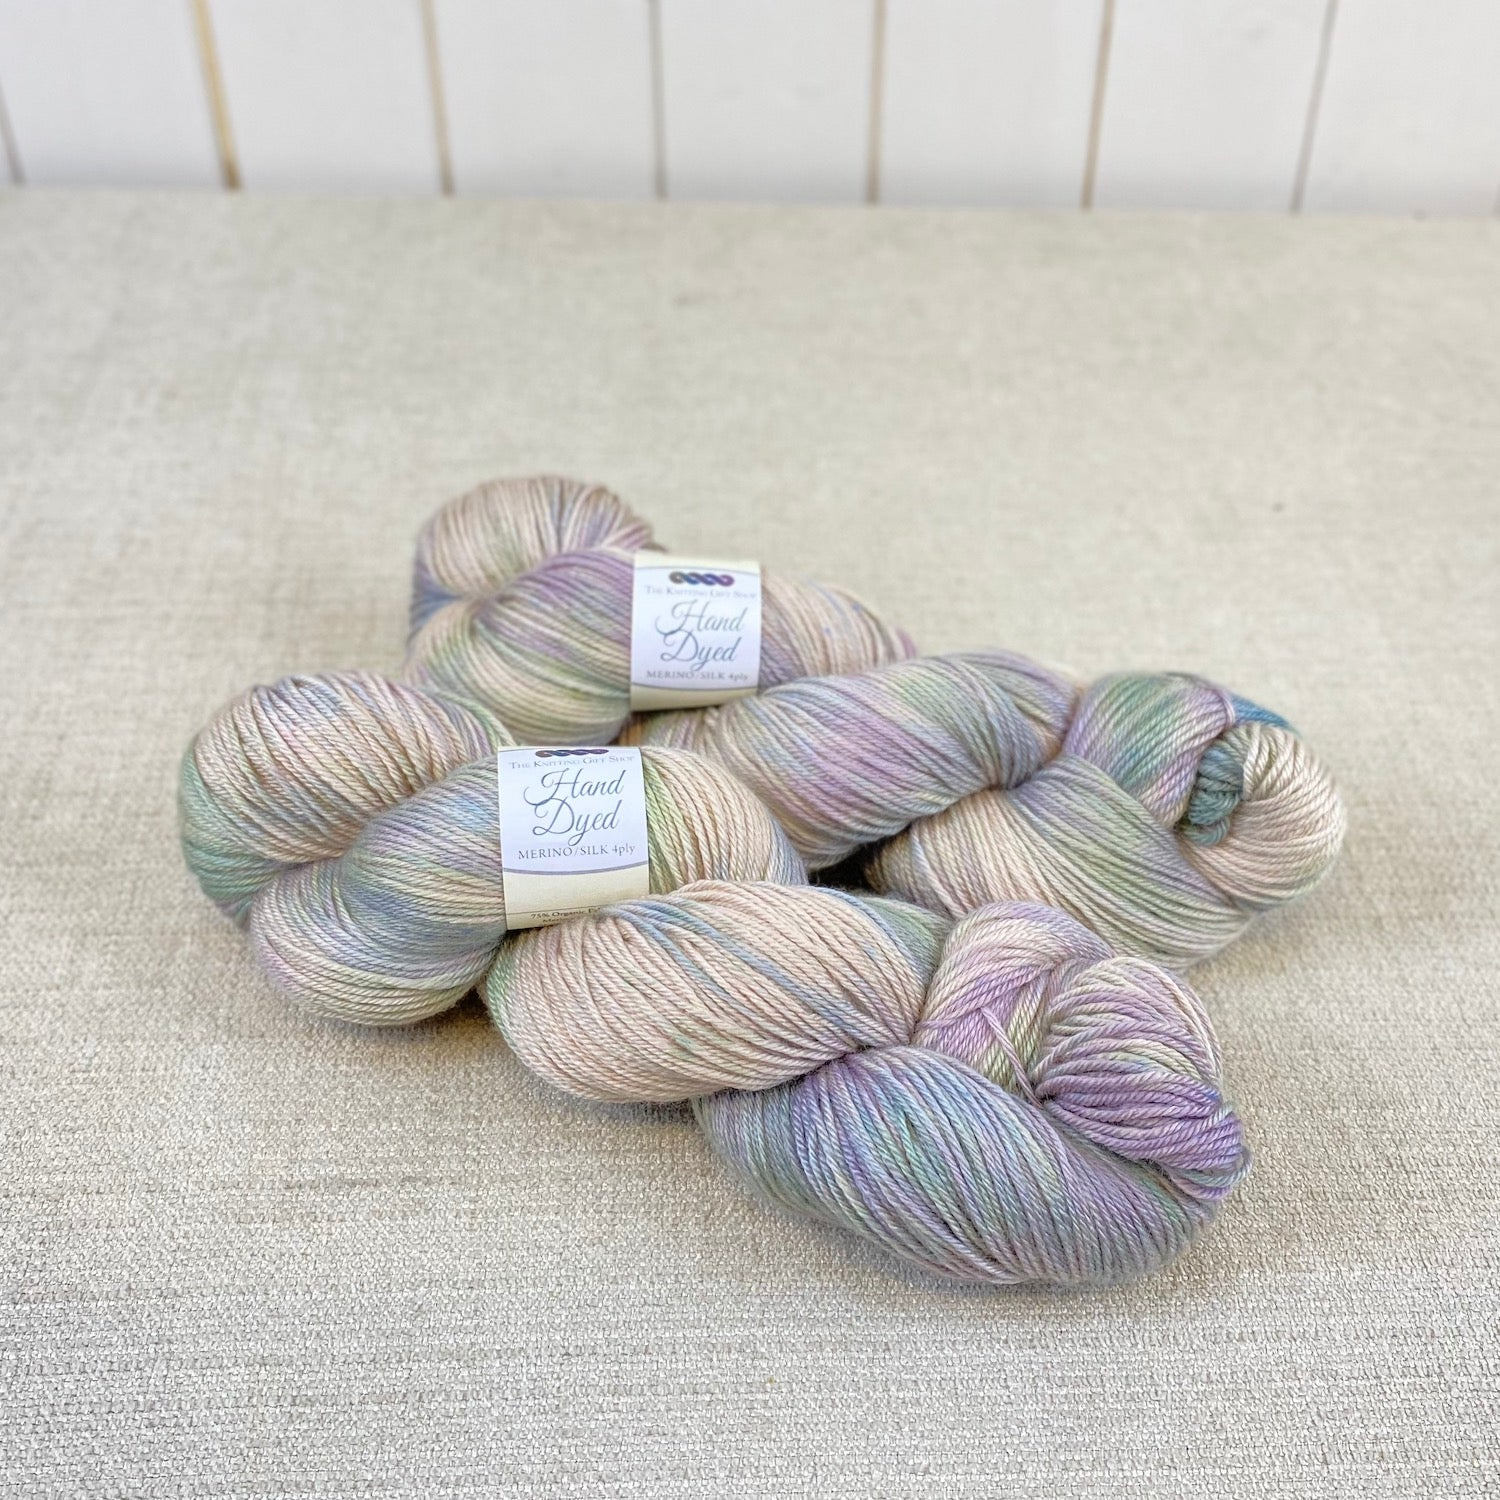 Hand Dyed Merino/Silk Luxury 4ply - 'Shades of Weardale'